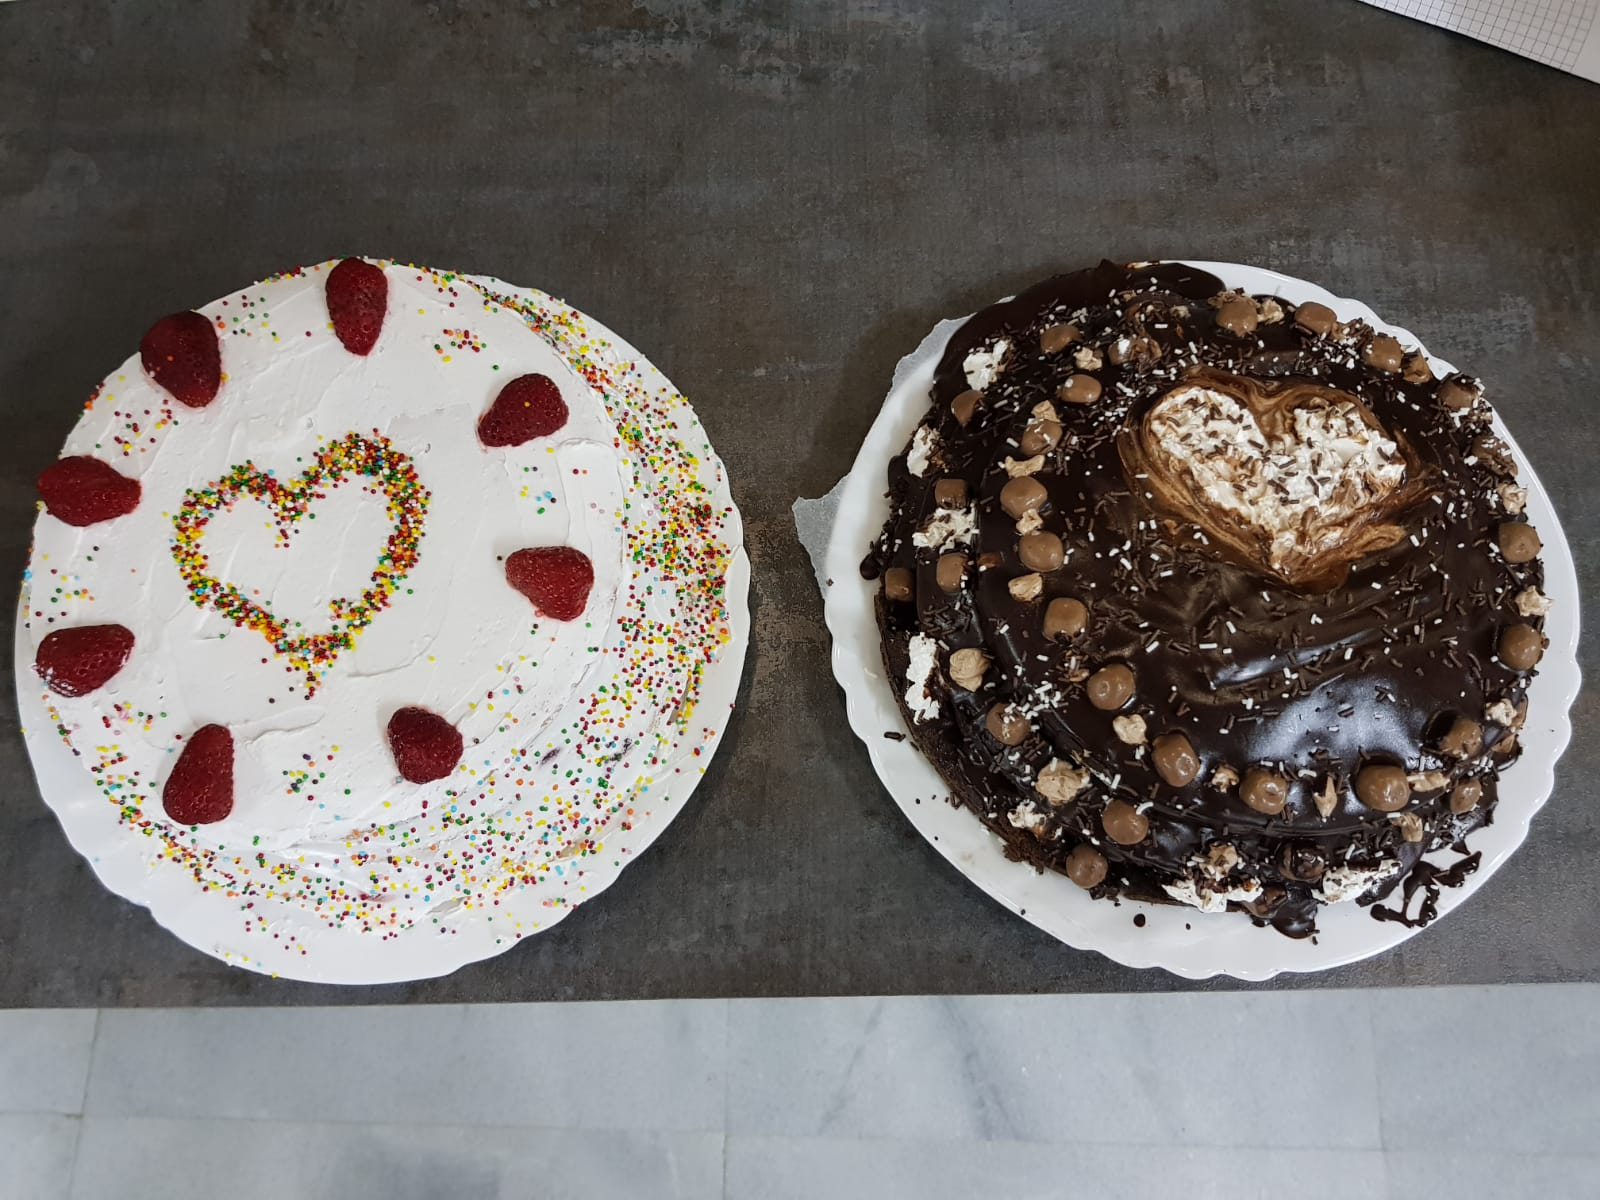 Z camp, day 8 - Make a cake, chocolate and strawberry with cream